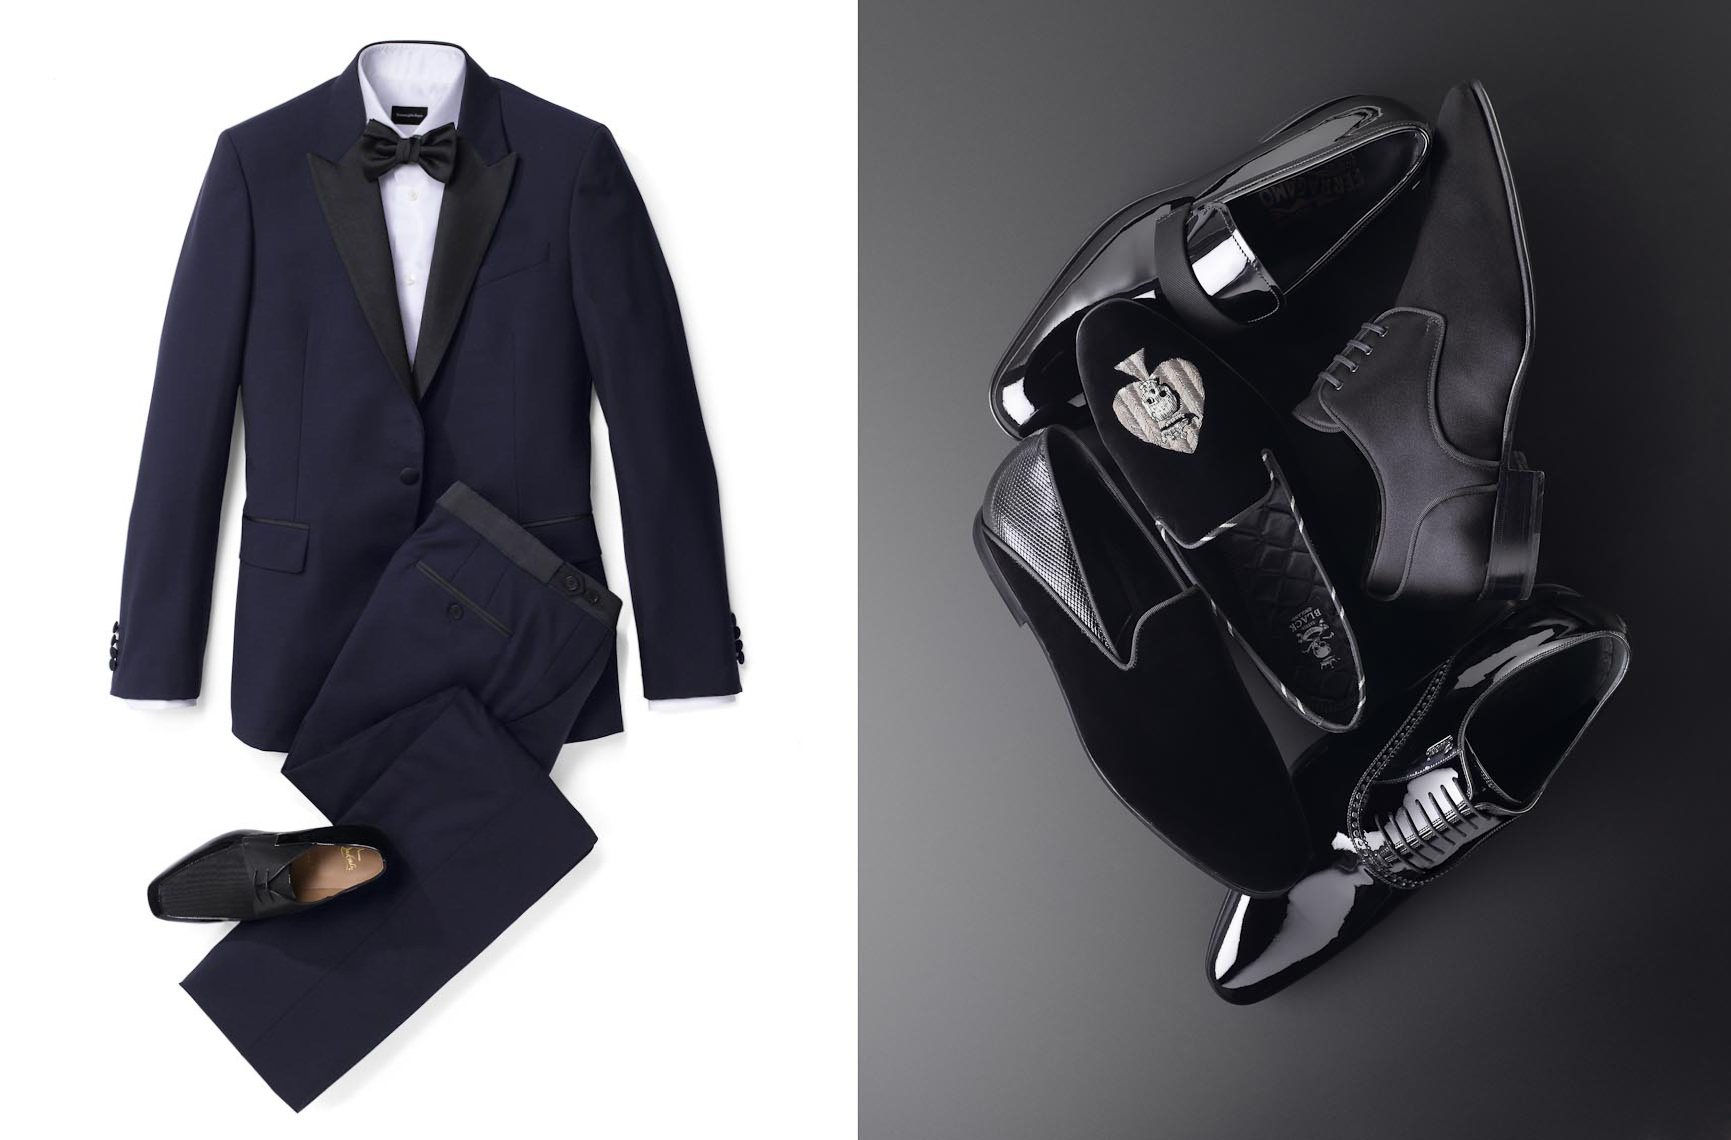 Apparel Still Life, Tuxedo Suit and Shoes Style Guide